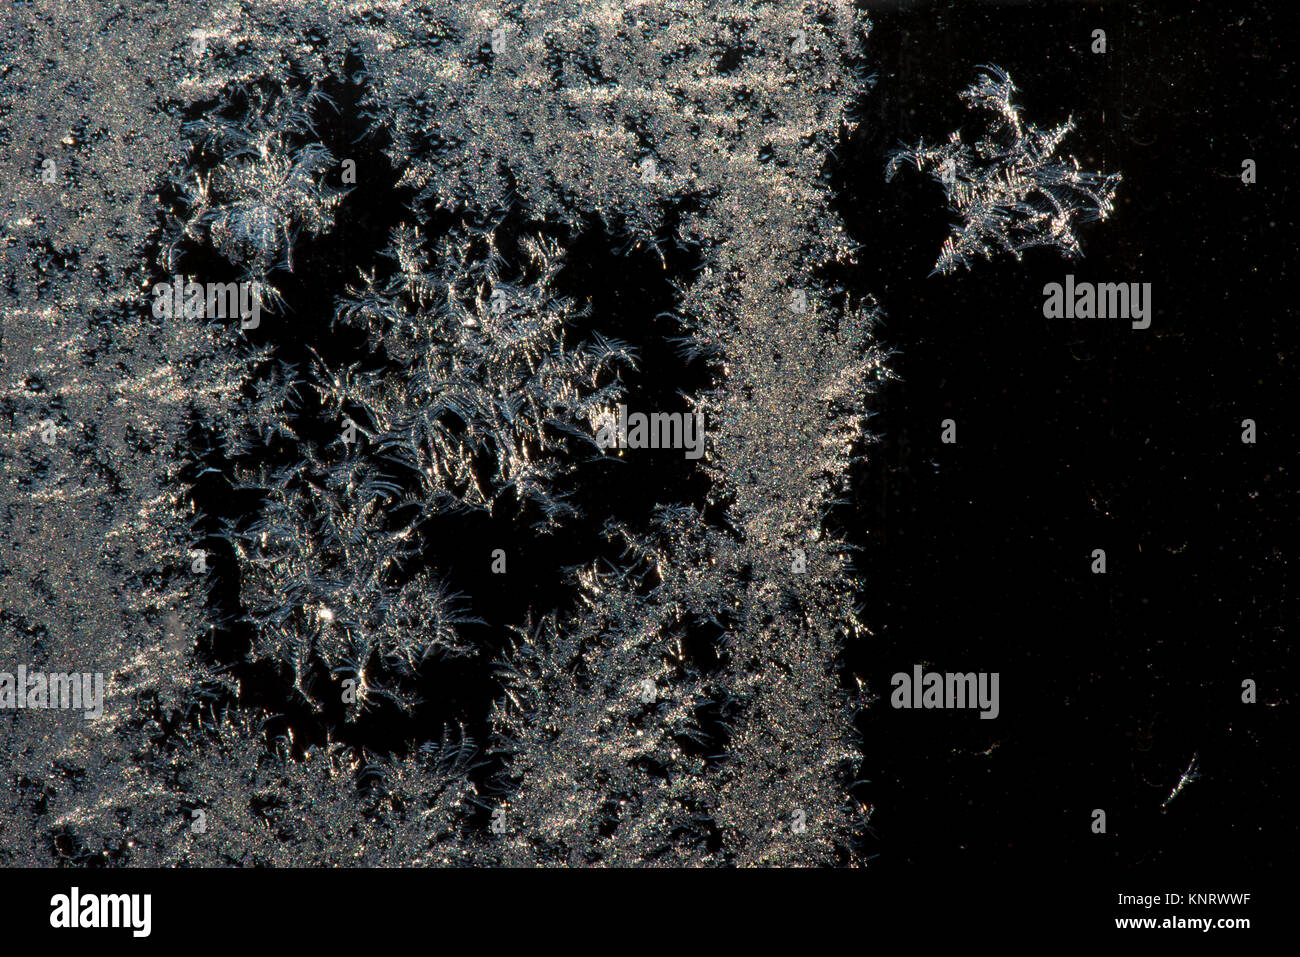 Macro shot of frozen ice crystals on a window from the recent cold weather, UK - Stock Image